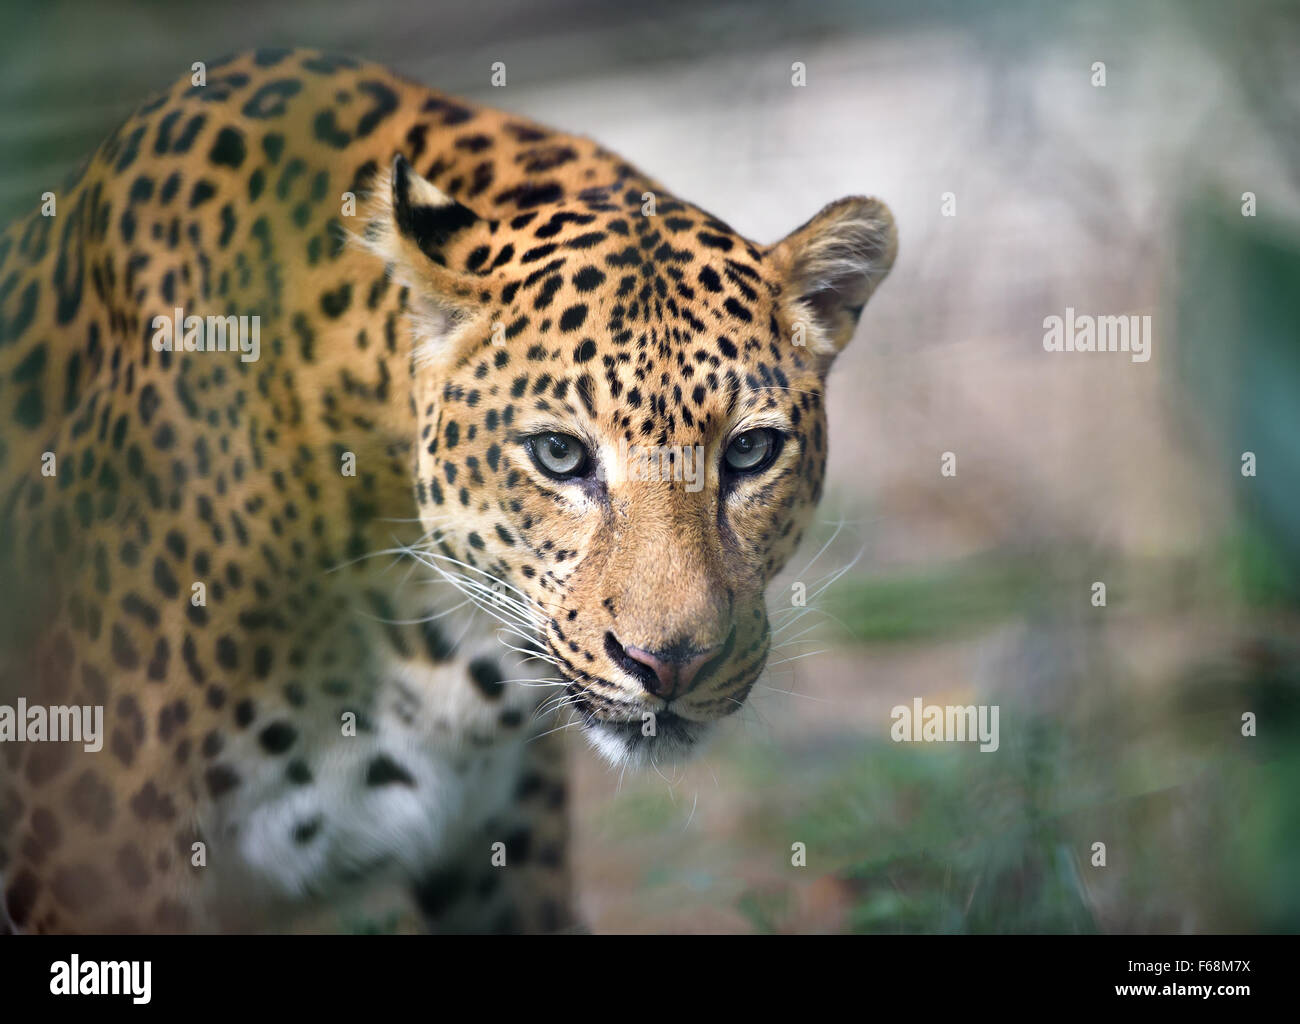 Closeup portrait of jaguar looking at camera, shallow depth of field - Stock Image